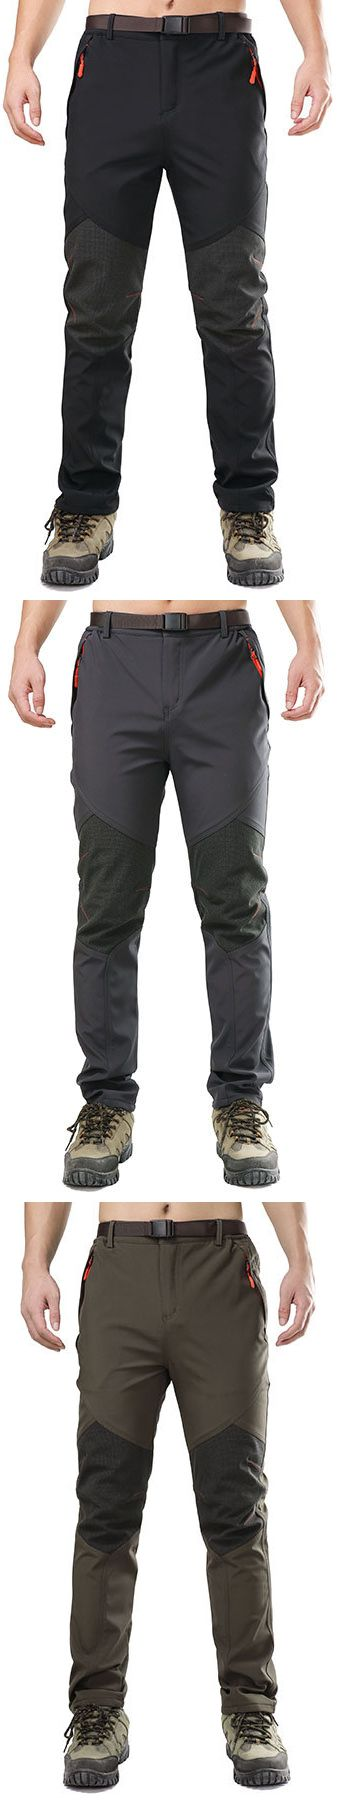 US$34.9 Mens Outdoor Windproof Waterproof Thicken Pants Breathable Thermal Trousers#pants #legging #style